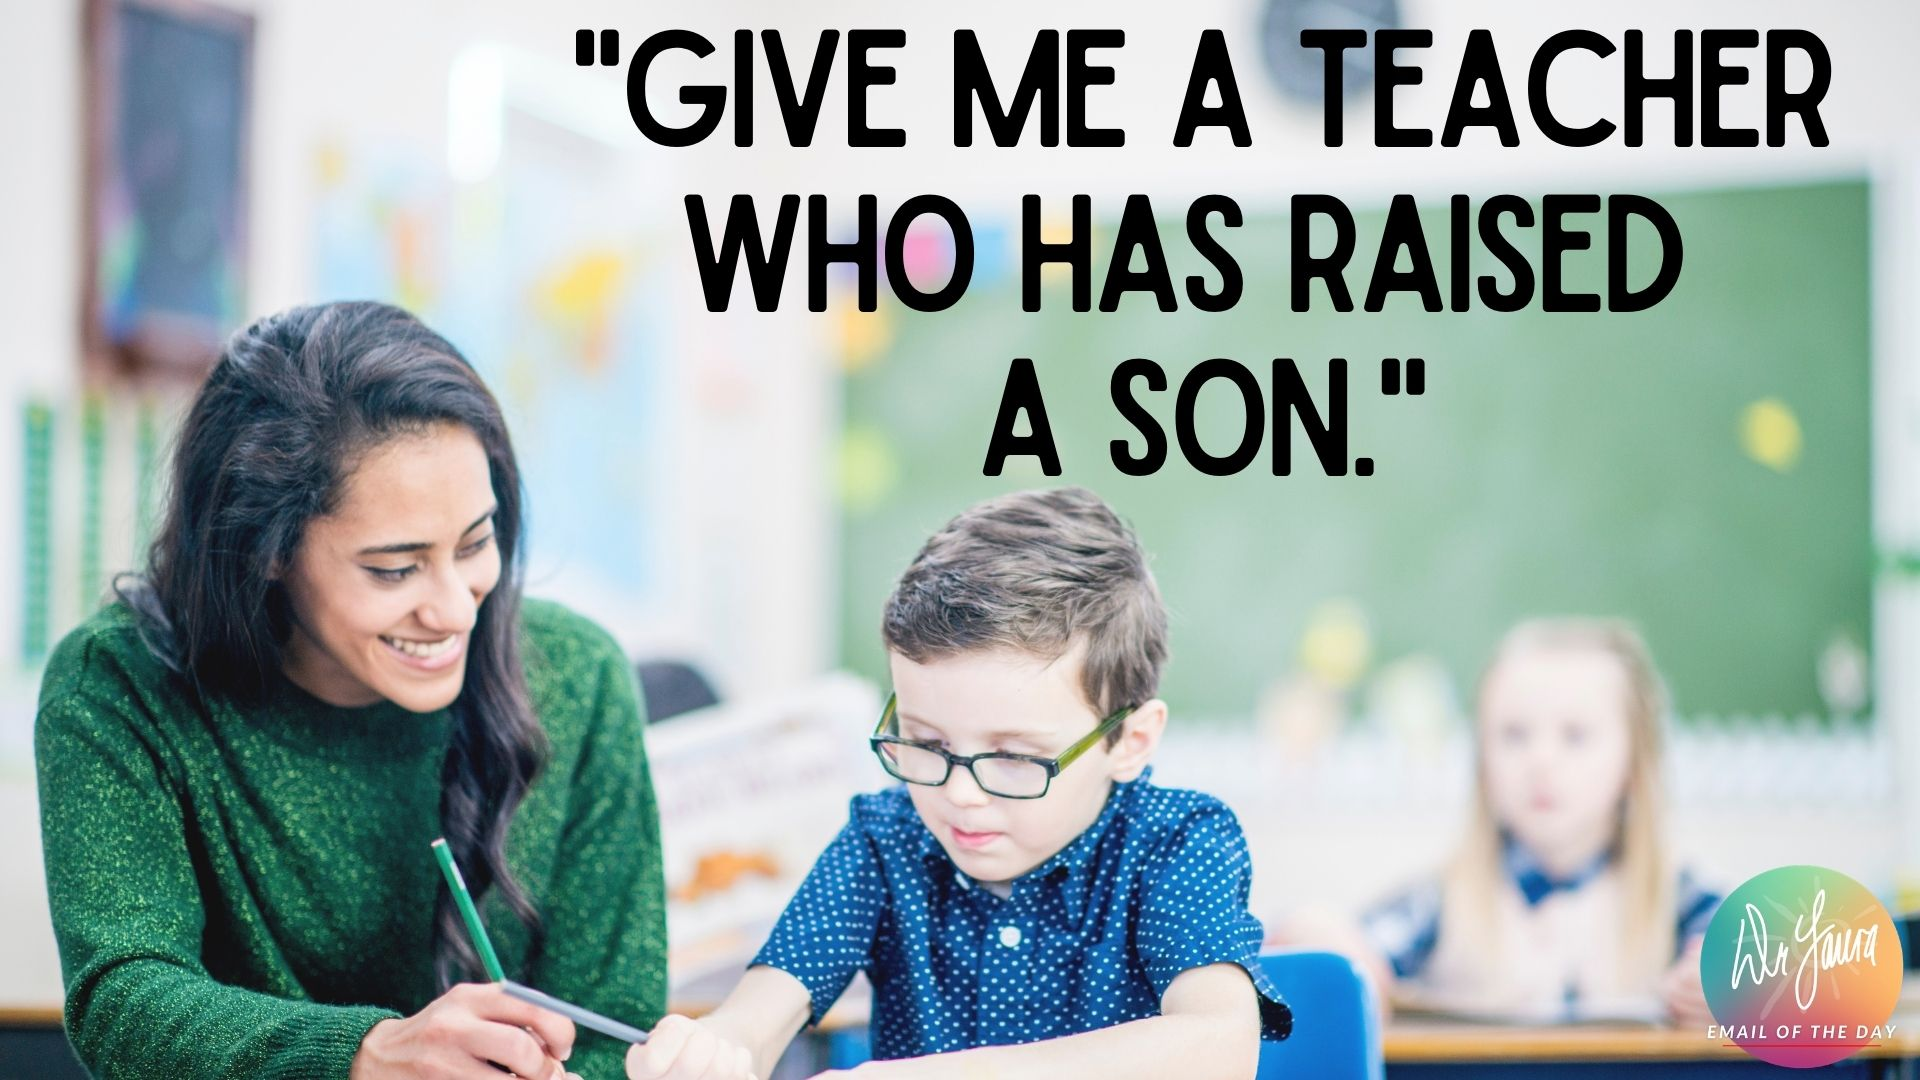 Email of the Day: How We Got Good Teachers for Our Son